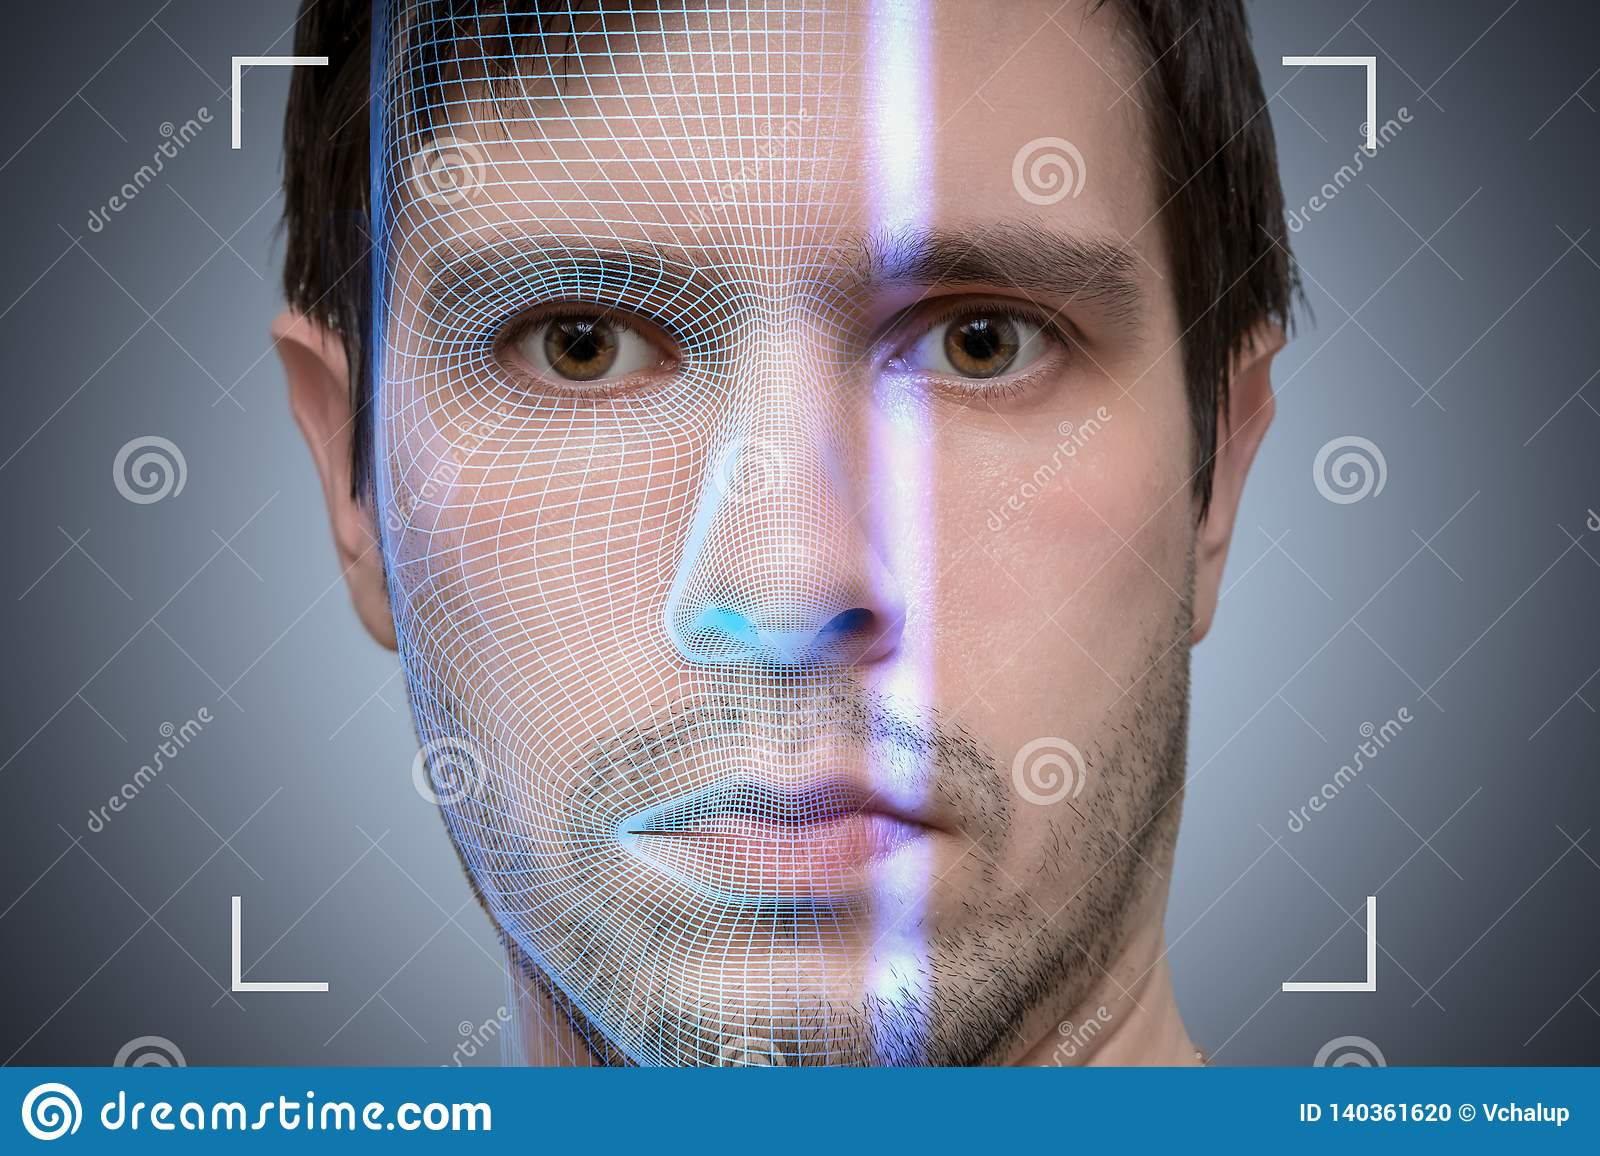 Biometric scanner is scanning face of young man. Artificial intelligence concept.